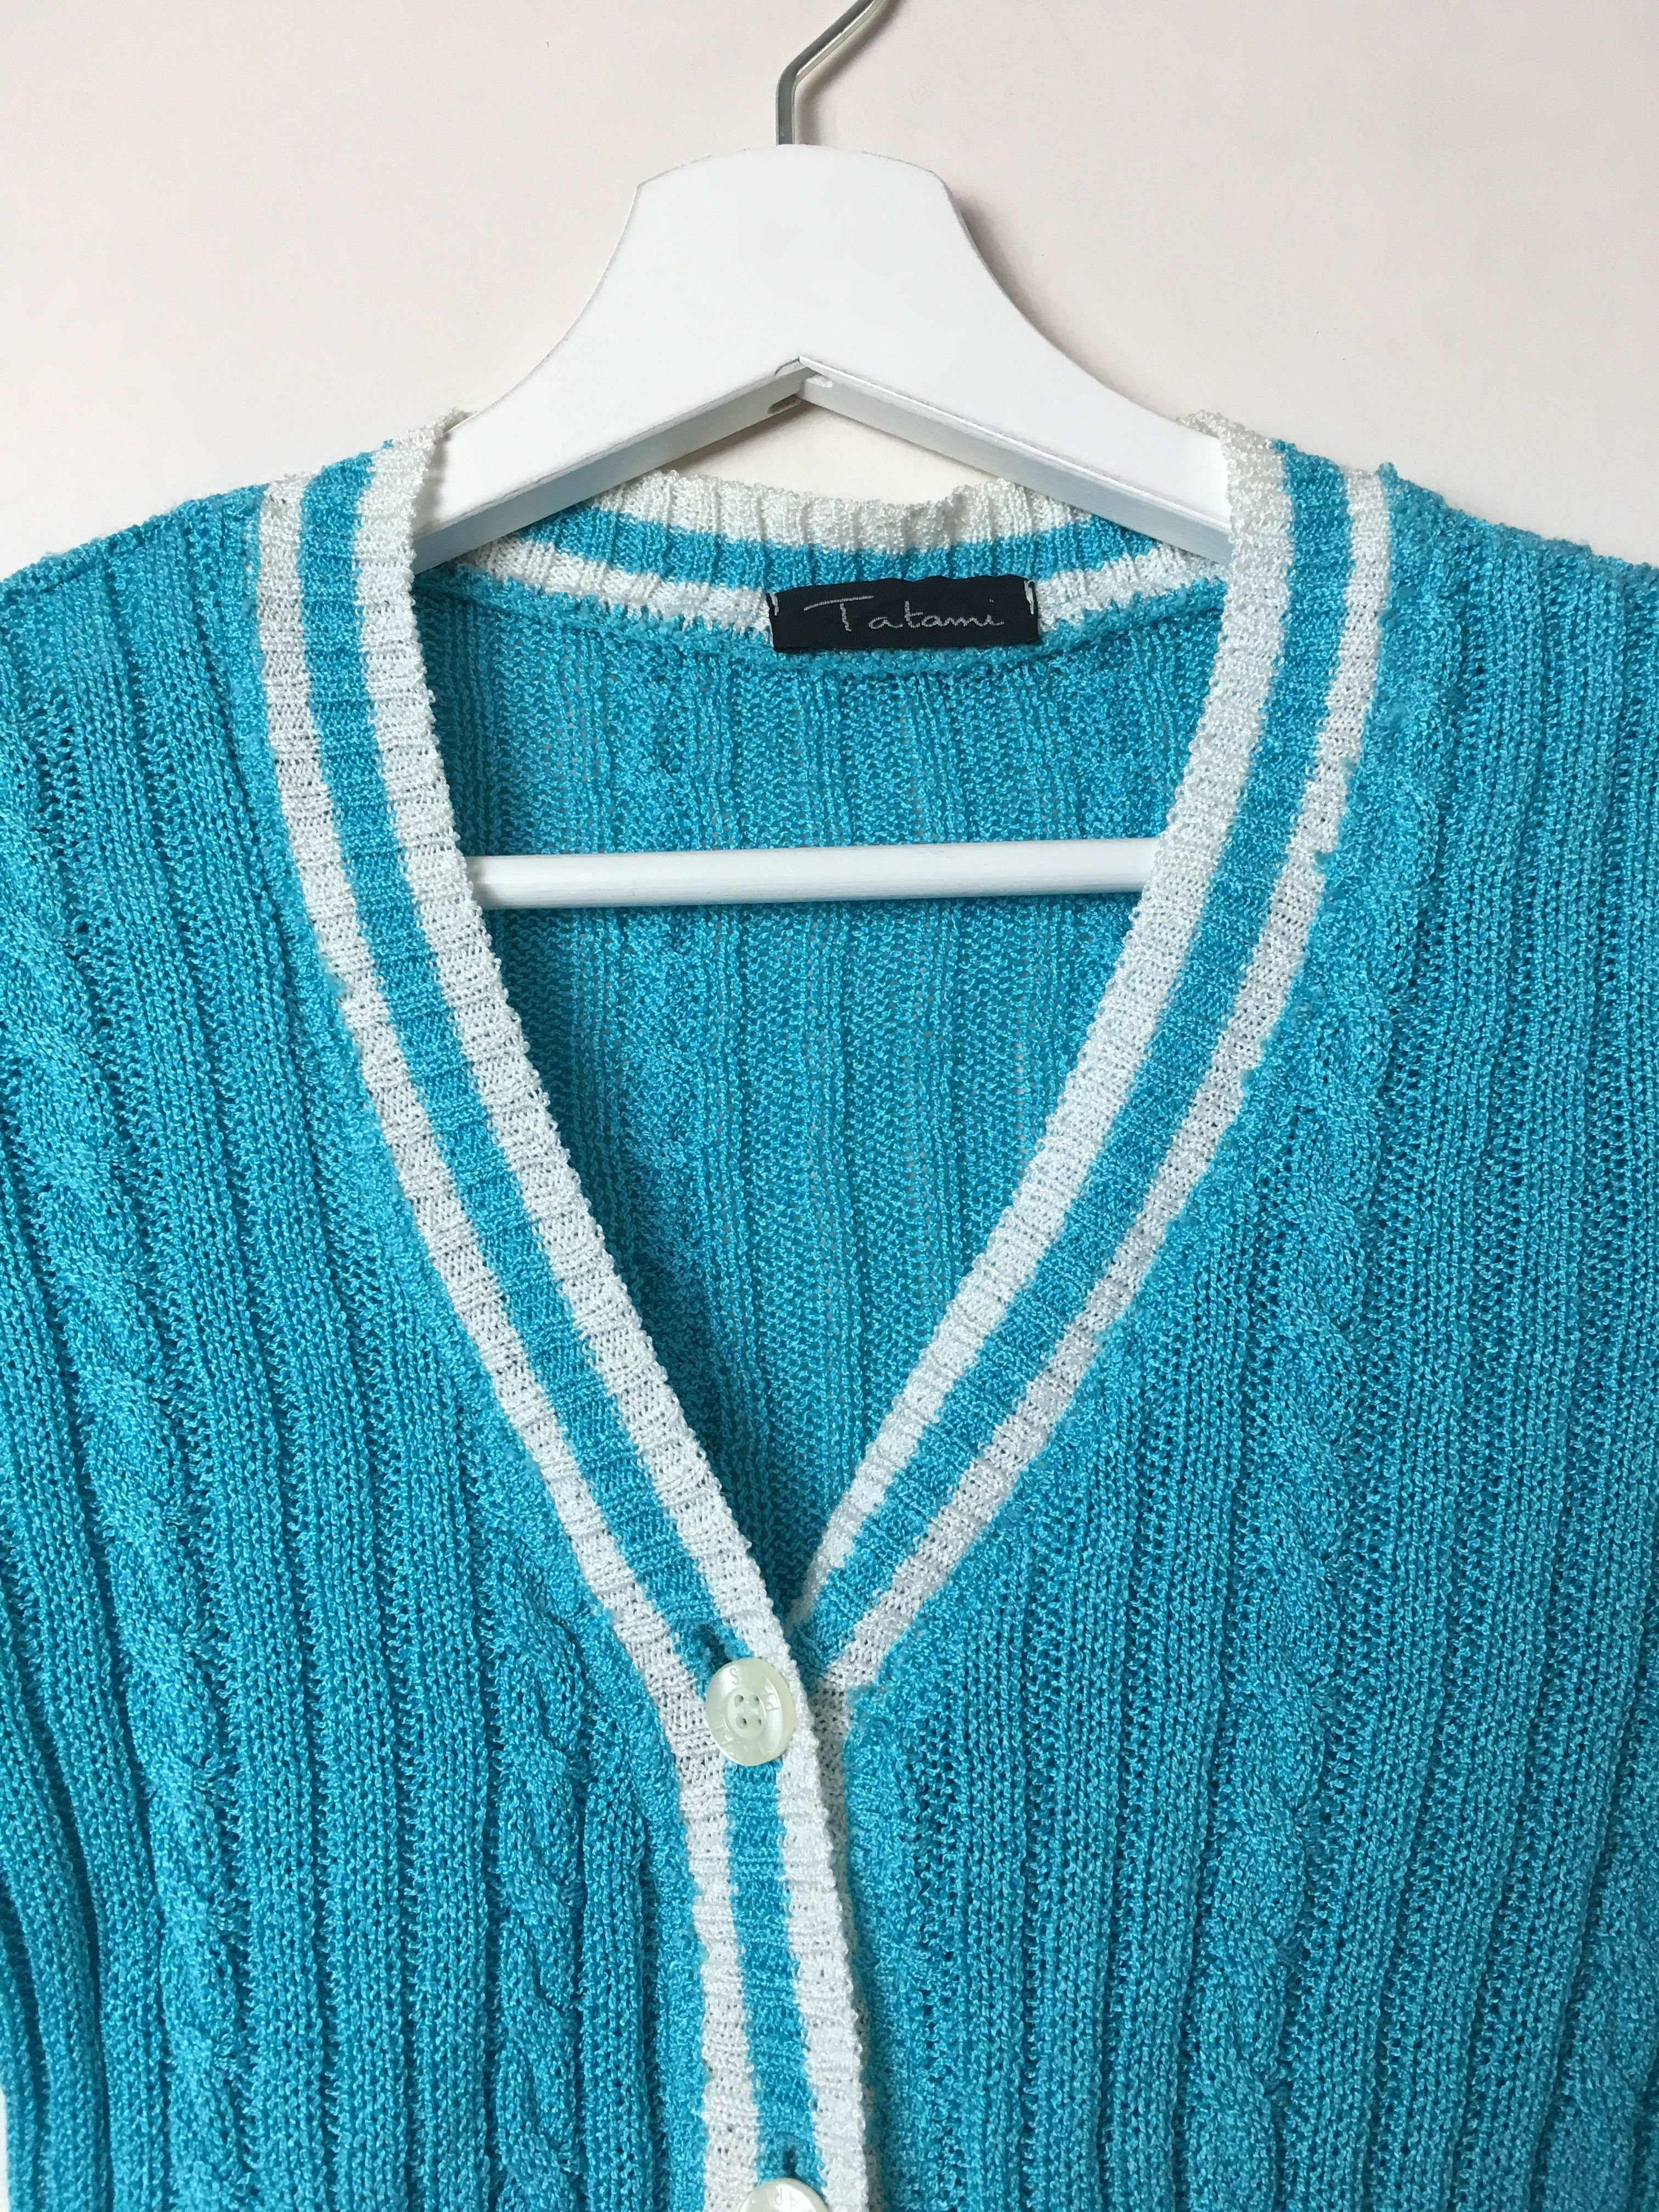 Pulls - Pull manches courtes